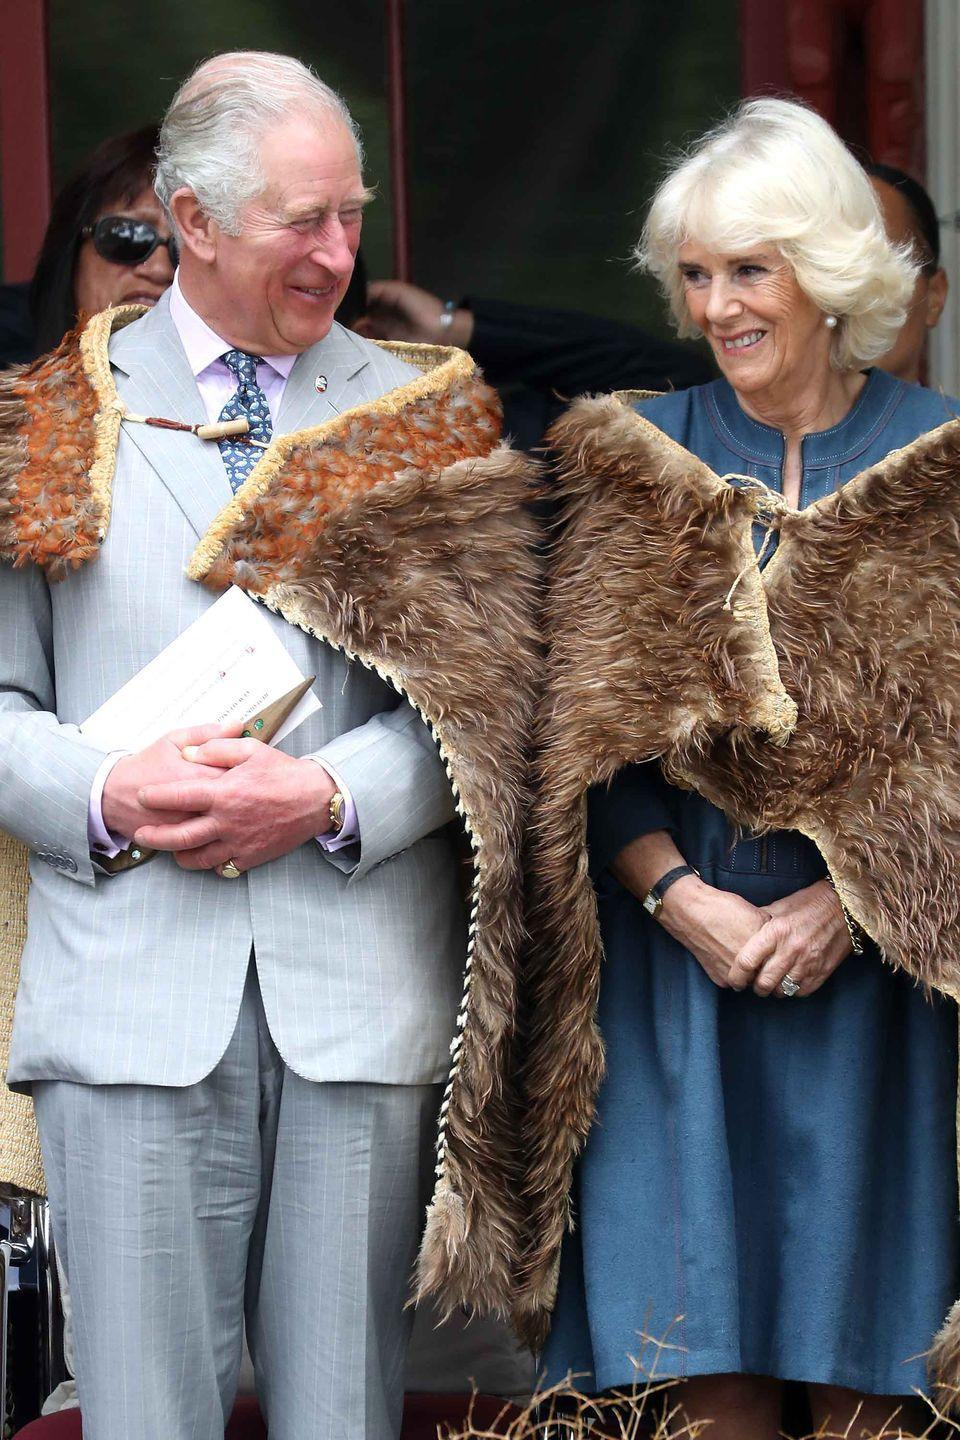 <p>Prince Charles and Camilla attend a reception during their visit to the Waitangi Treaty Grounds in Waitangi, New Zealand.</p>